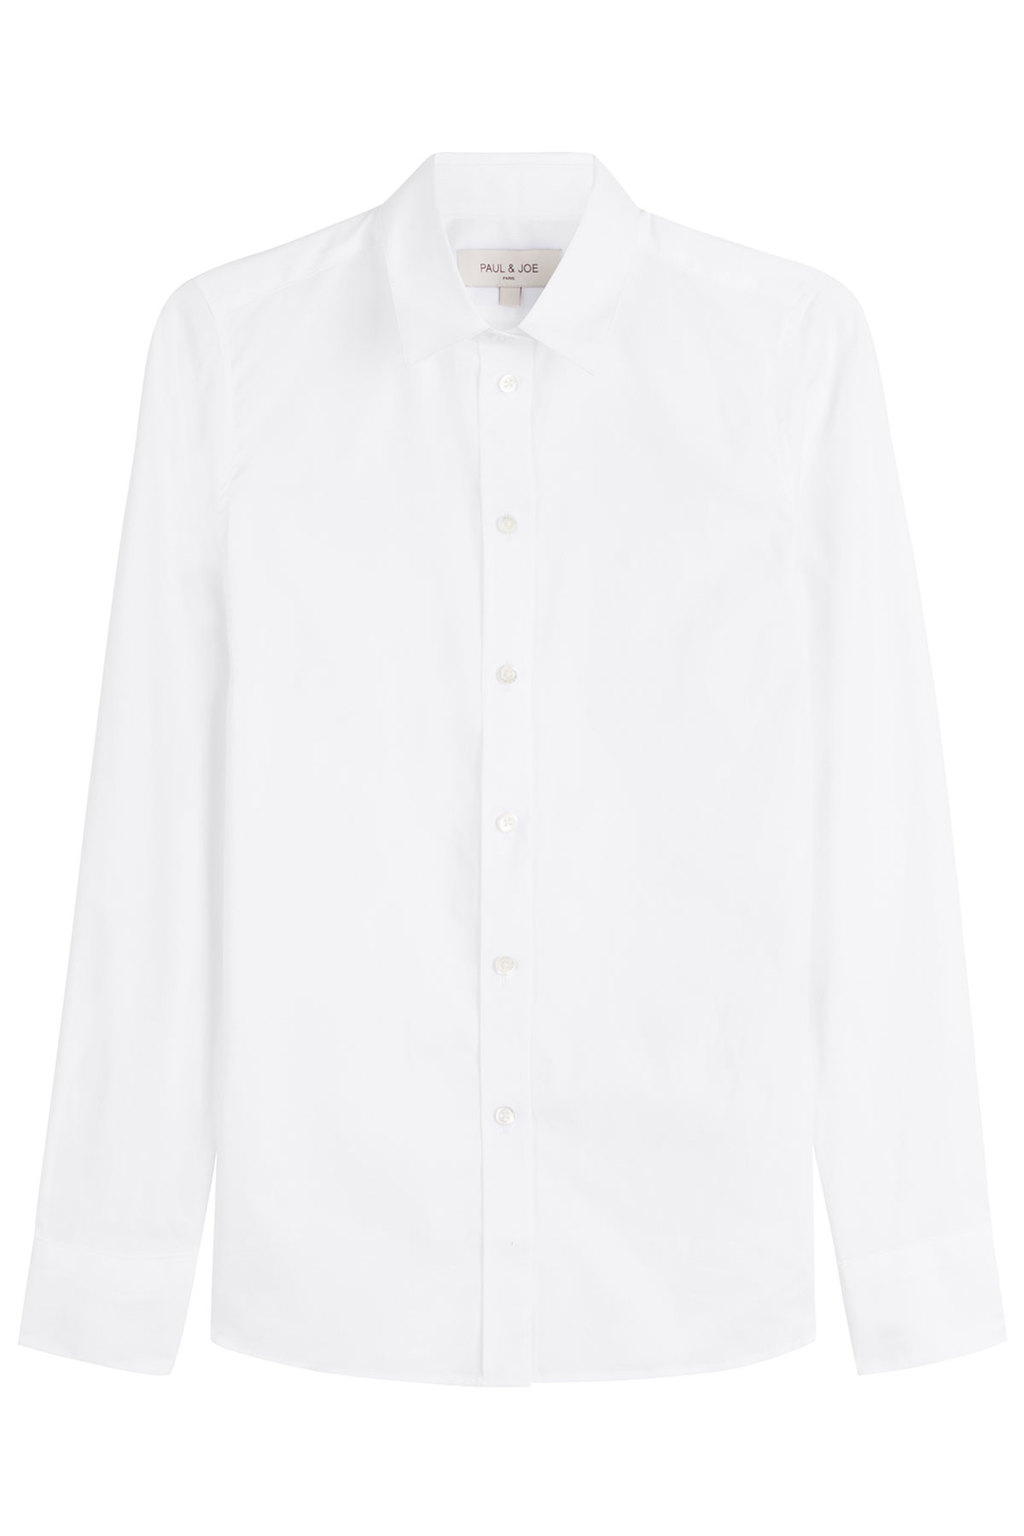 Cotton Shirt - neckline: shirt collar/peter pan/zip with opening; pattern: plain; style: shirt; predominant colour: white; occasions: work; length: standard; fibres: cotton - 100%; fit: body skimming; sleeve length: long sleeve; sleeve style: standard; texture group: cotton feel fabrics; pattern type: fabric; season: s/s 2016; wardrobe: basic